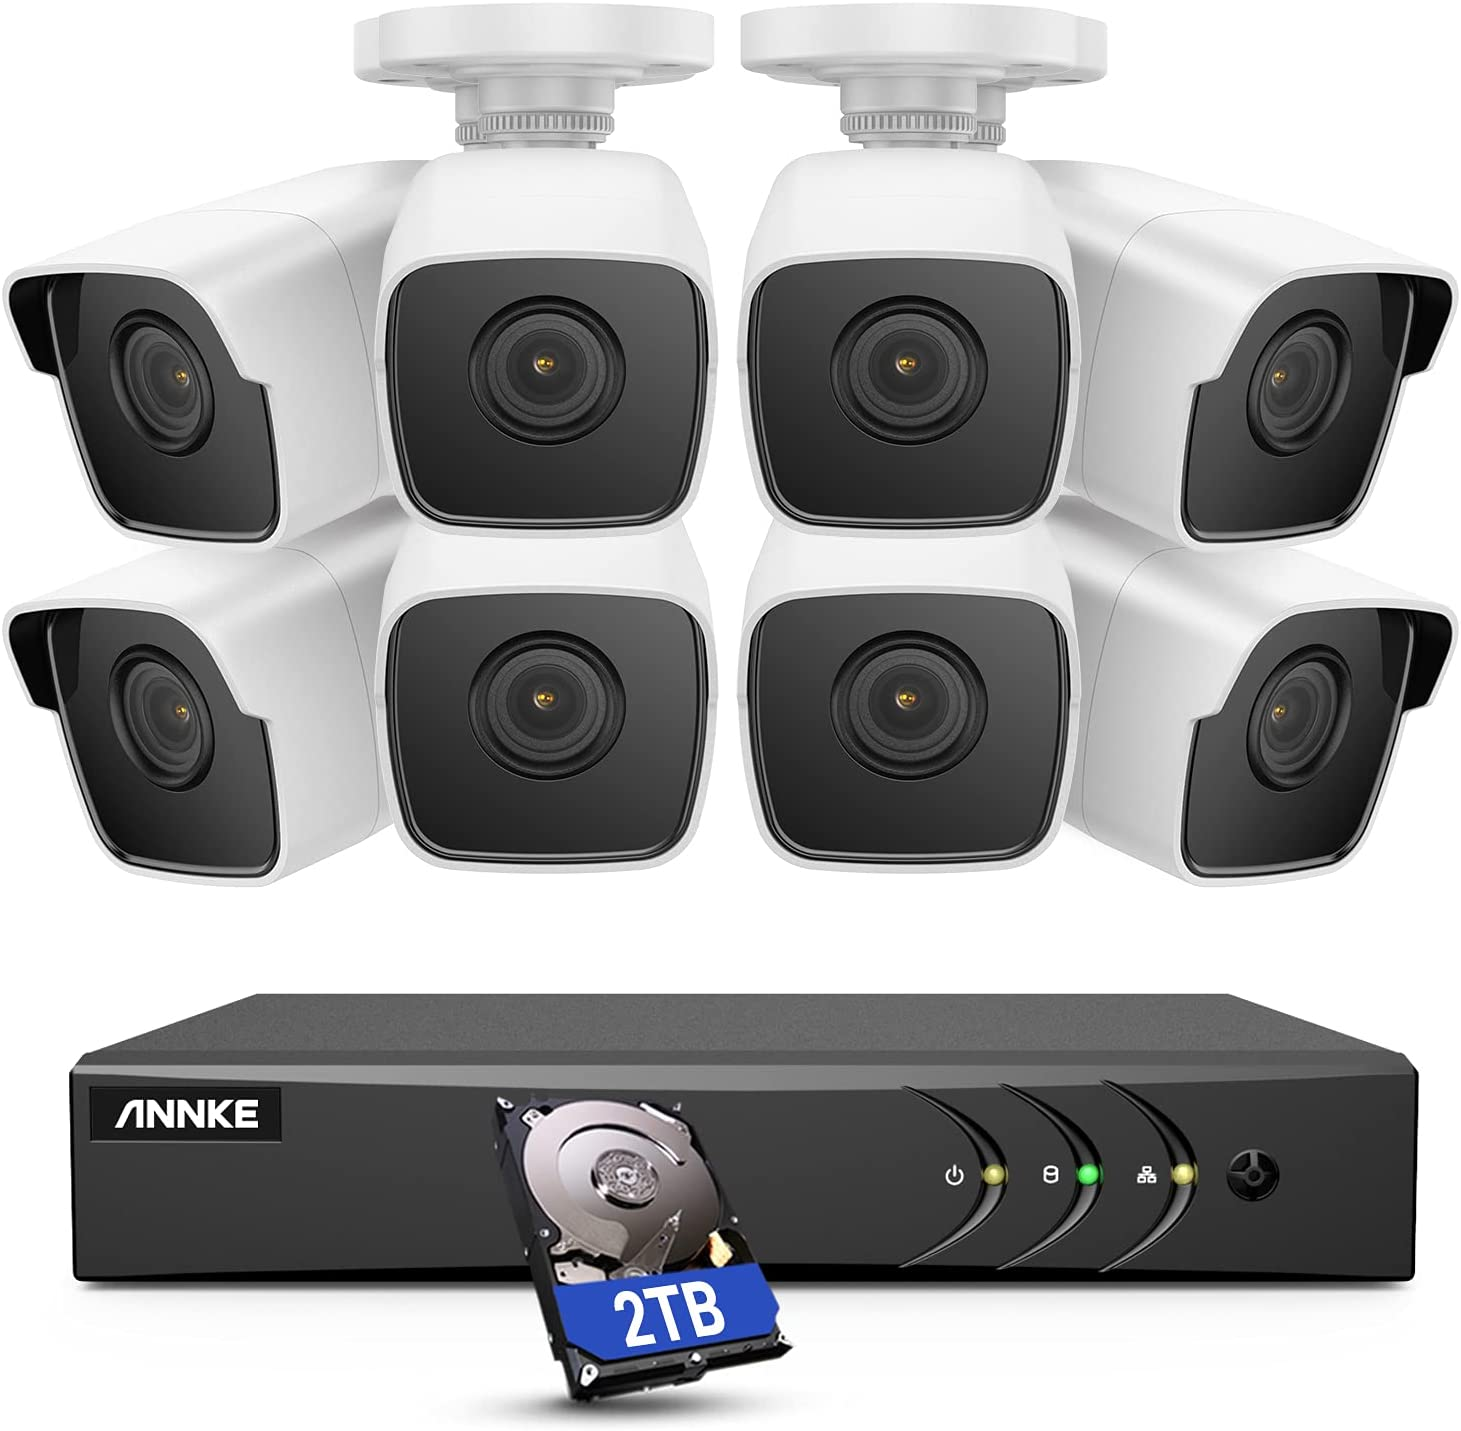 ANNKE 8CH 8 Camera Security System H.265+ DVR Recorder and 8 x 5MP IP67 Weatherproof Outdoor CCTV Cameras, 100 ft Night Vision with Smart IR & WDR for Home Surveillance, 2 TB Hard Drive - E500